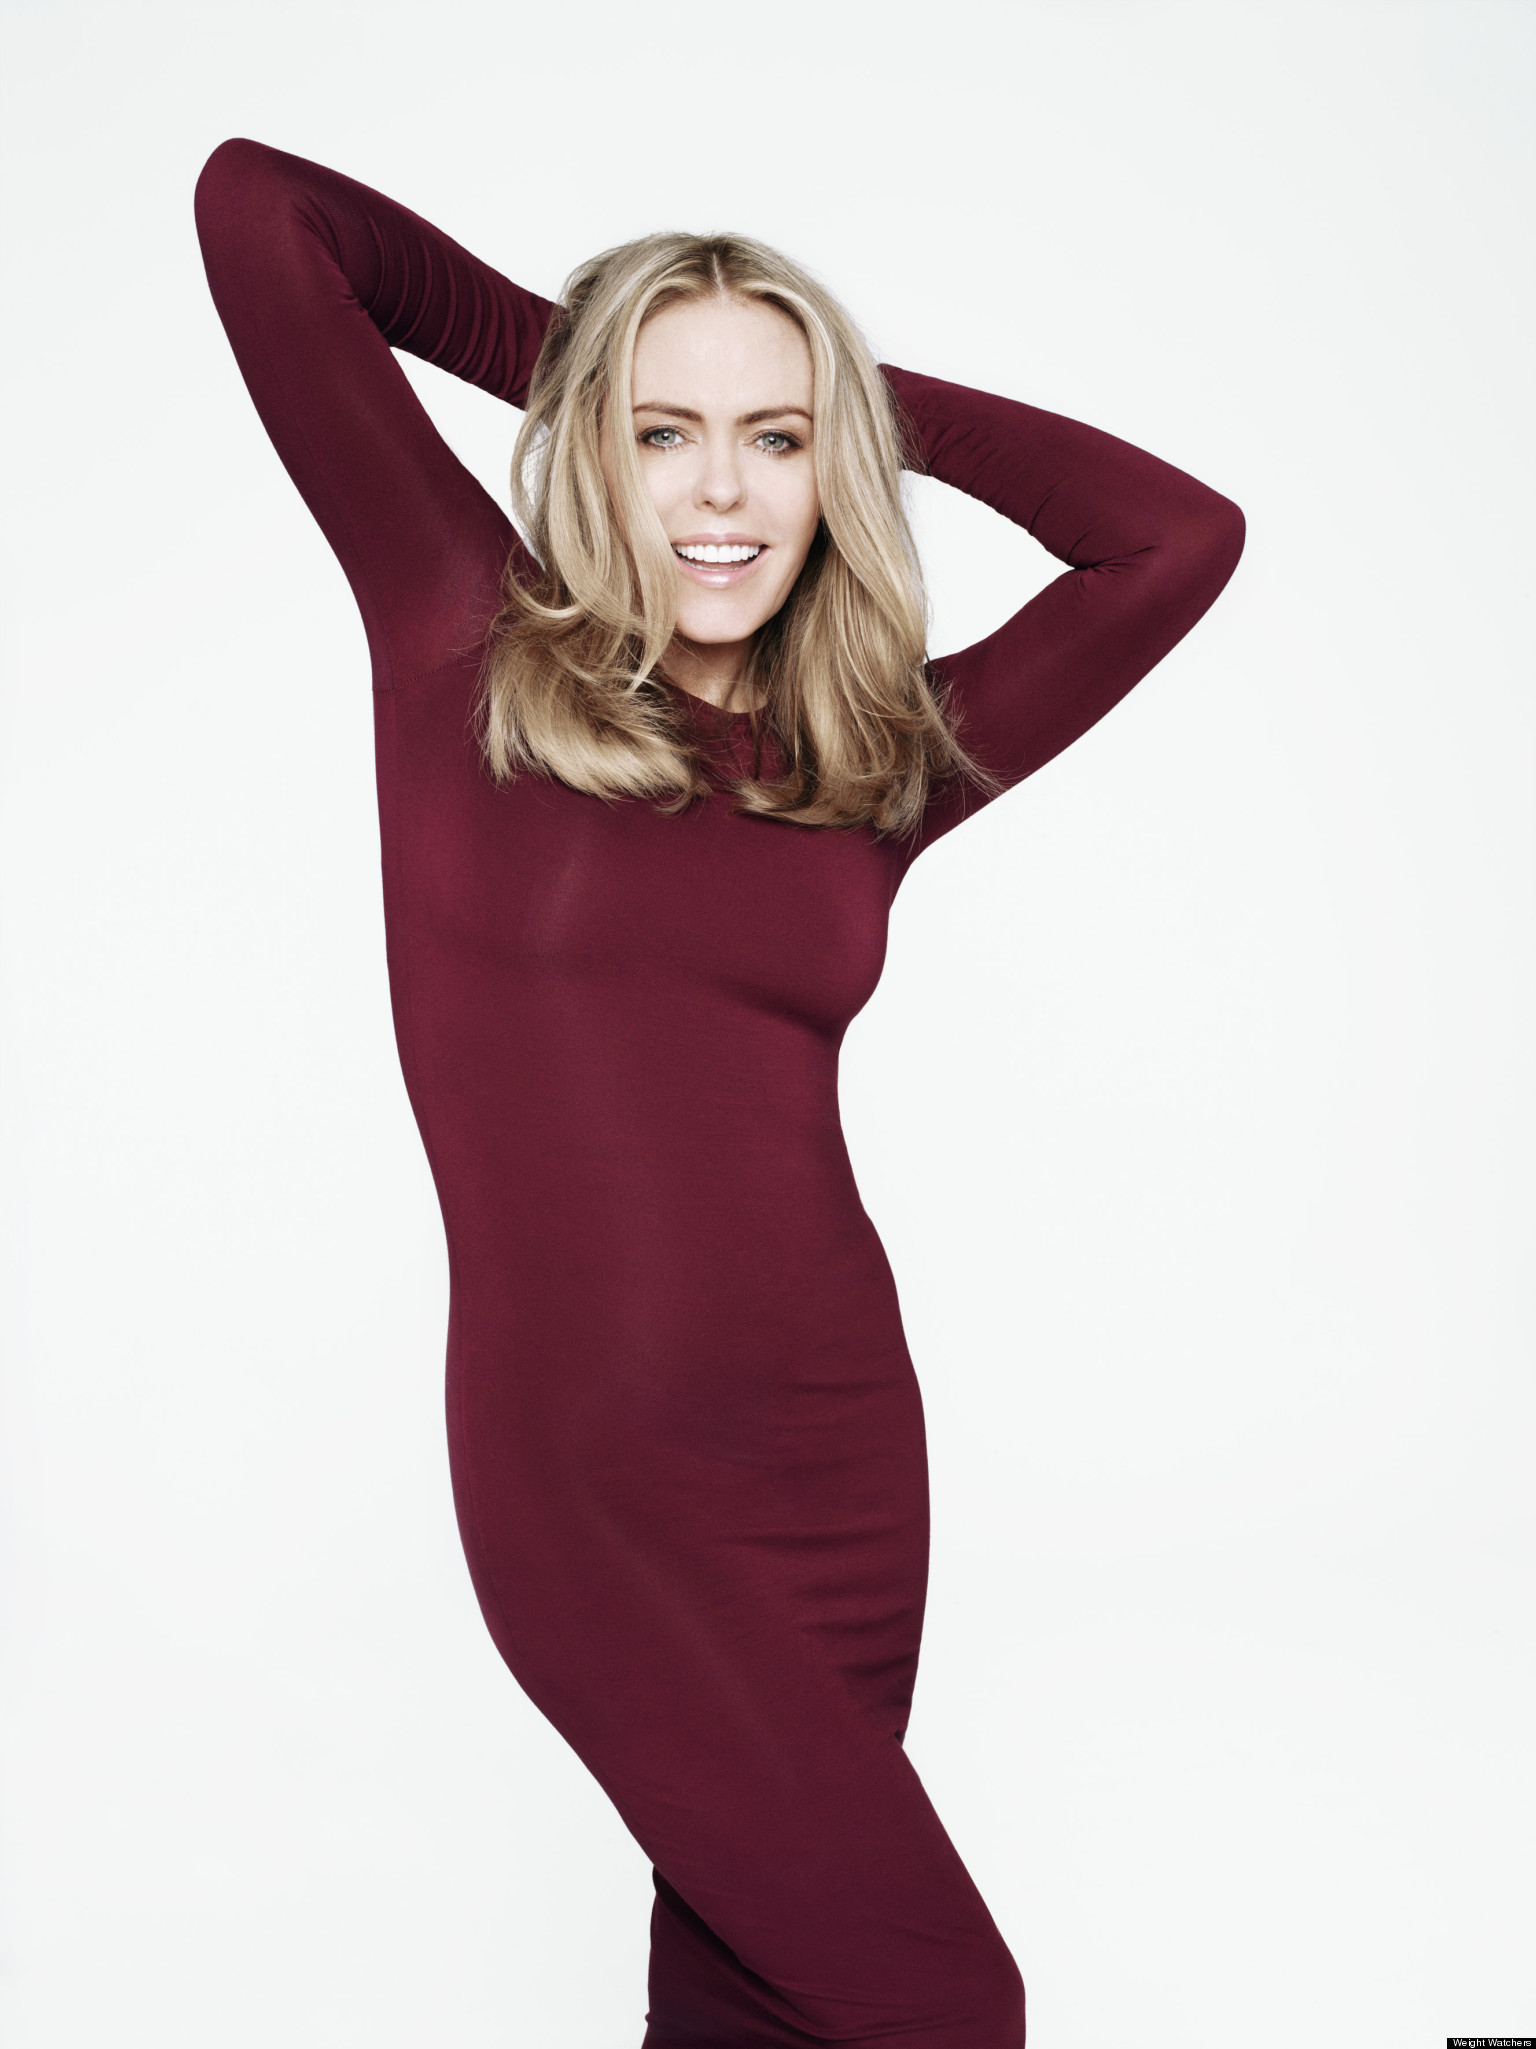 patsy kensit net worthpatsy kensit фото, patsy kensit wiki, patsy kensit cantante, patsy kensit sanremo, patsy kensit instagram, patsy kensit twitter, patsy kensit i'm not scared, patsy kensit eros ramazzotti, patsy kensit, patsy kensit 2014, patsy kensit 2015, patsy kensit youtube, patsy kensit i not scared, patsy kensit lethal weapon, patsy kensit marriage, patsy kensit absolute beginners, patsy kensit wikipedia, patsy kensit stay with me, patsy kensit oggi, patsy kensit net worth